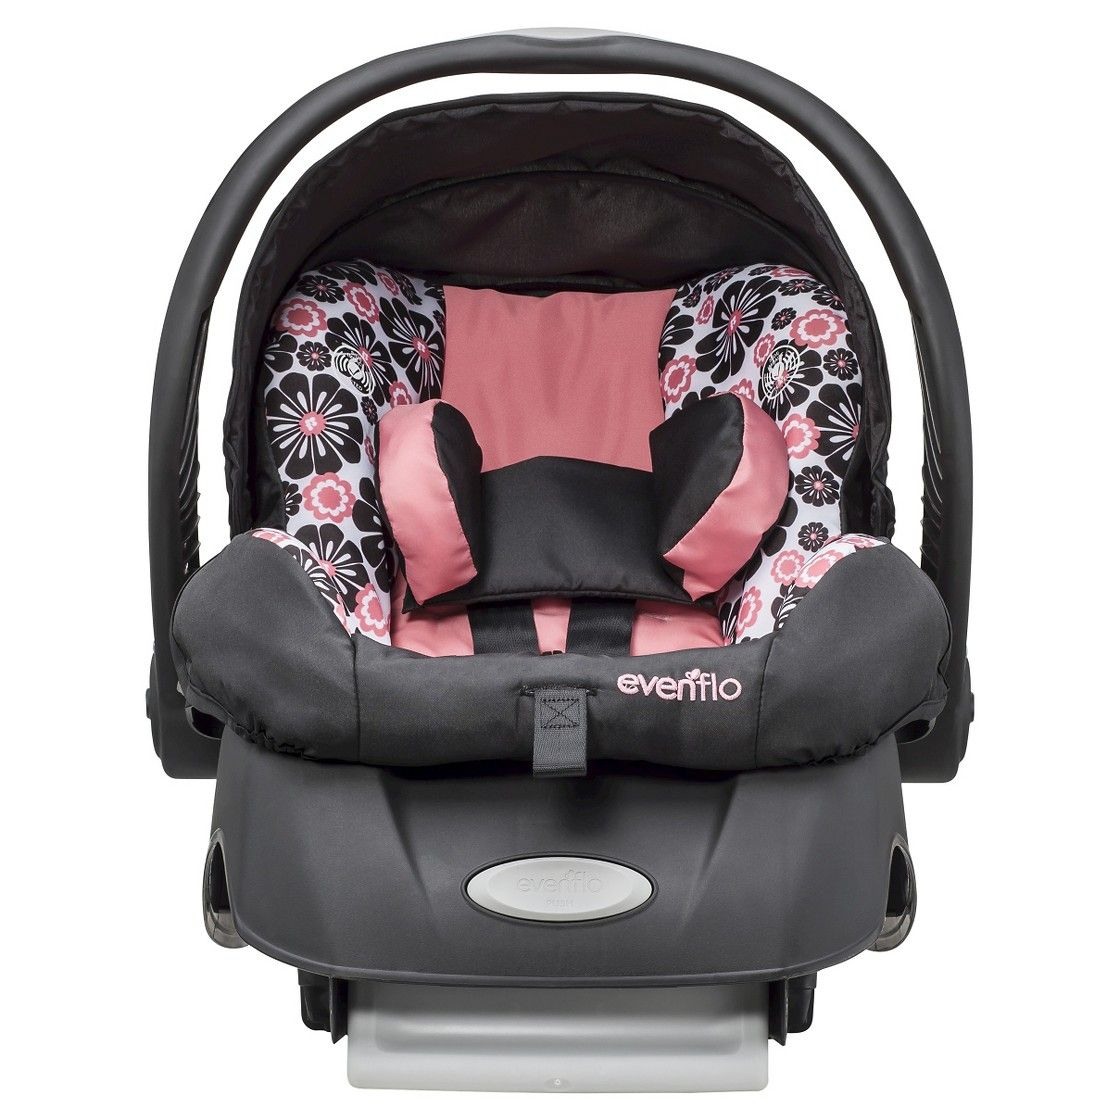 Evenflo Embrace Lx Infant Car Seat Penelope Baby